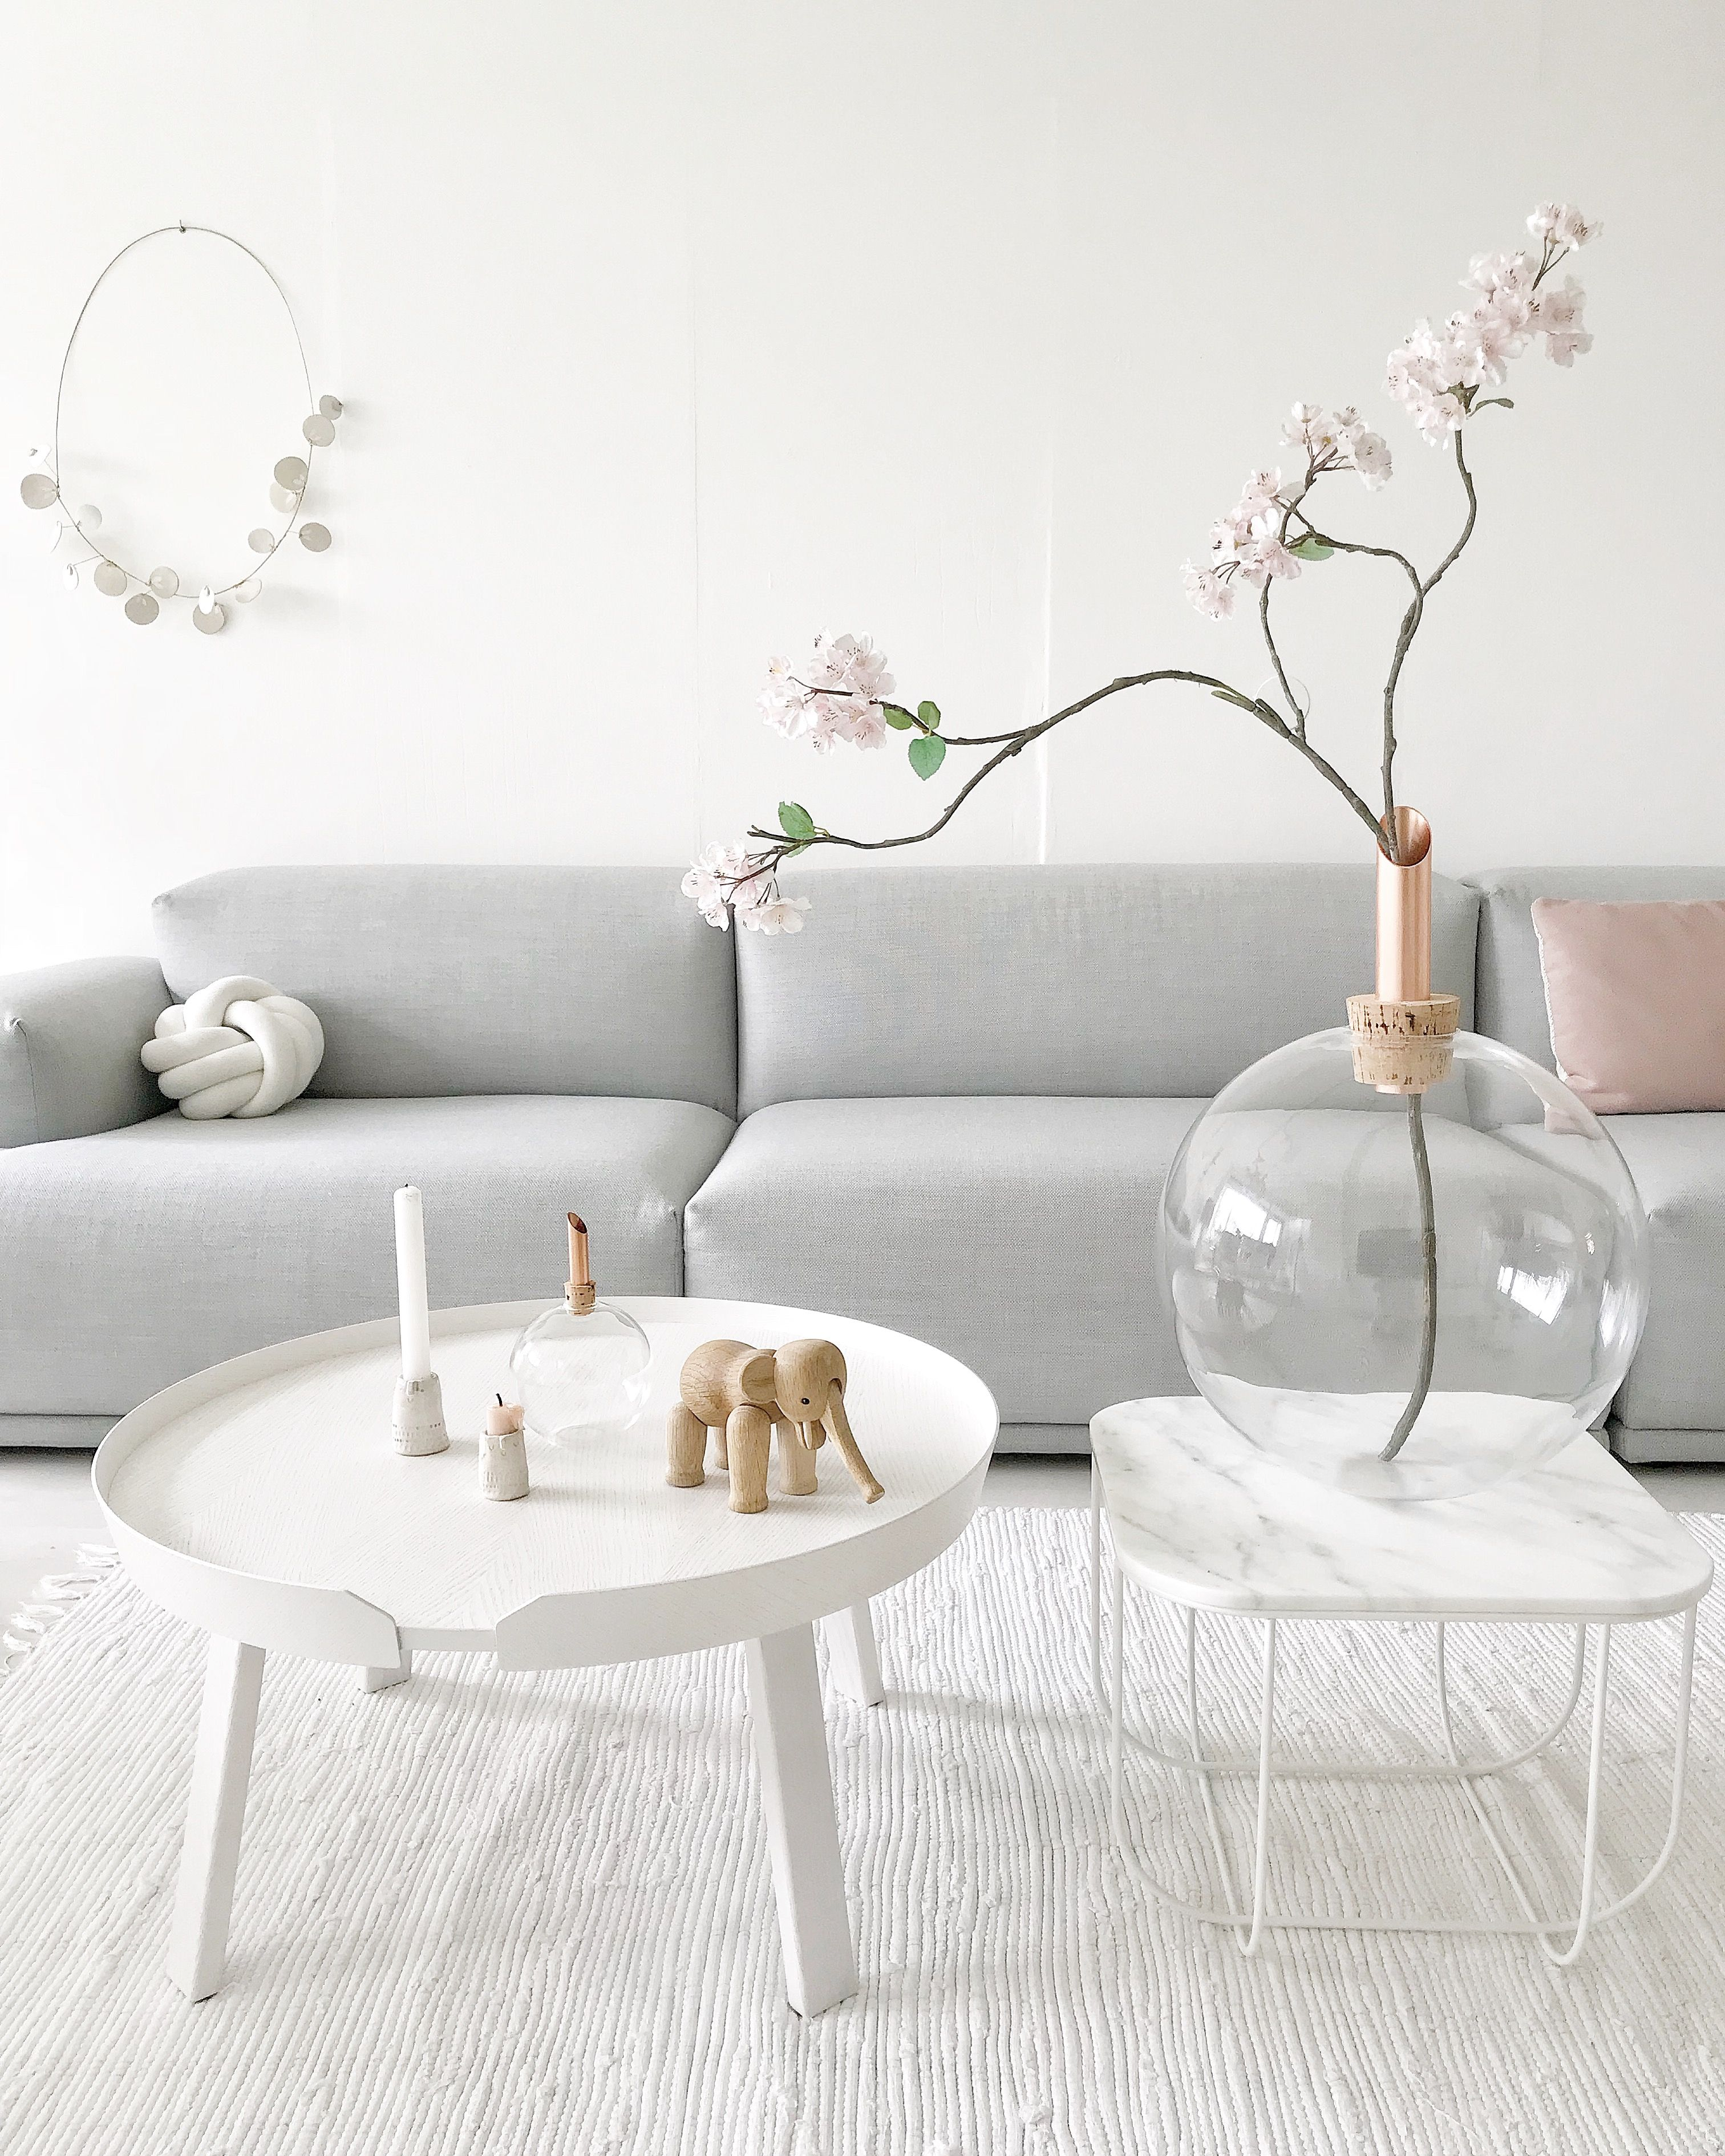 Pastel Colors With White Provide The Perfect Color Palette For Any